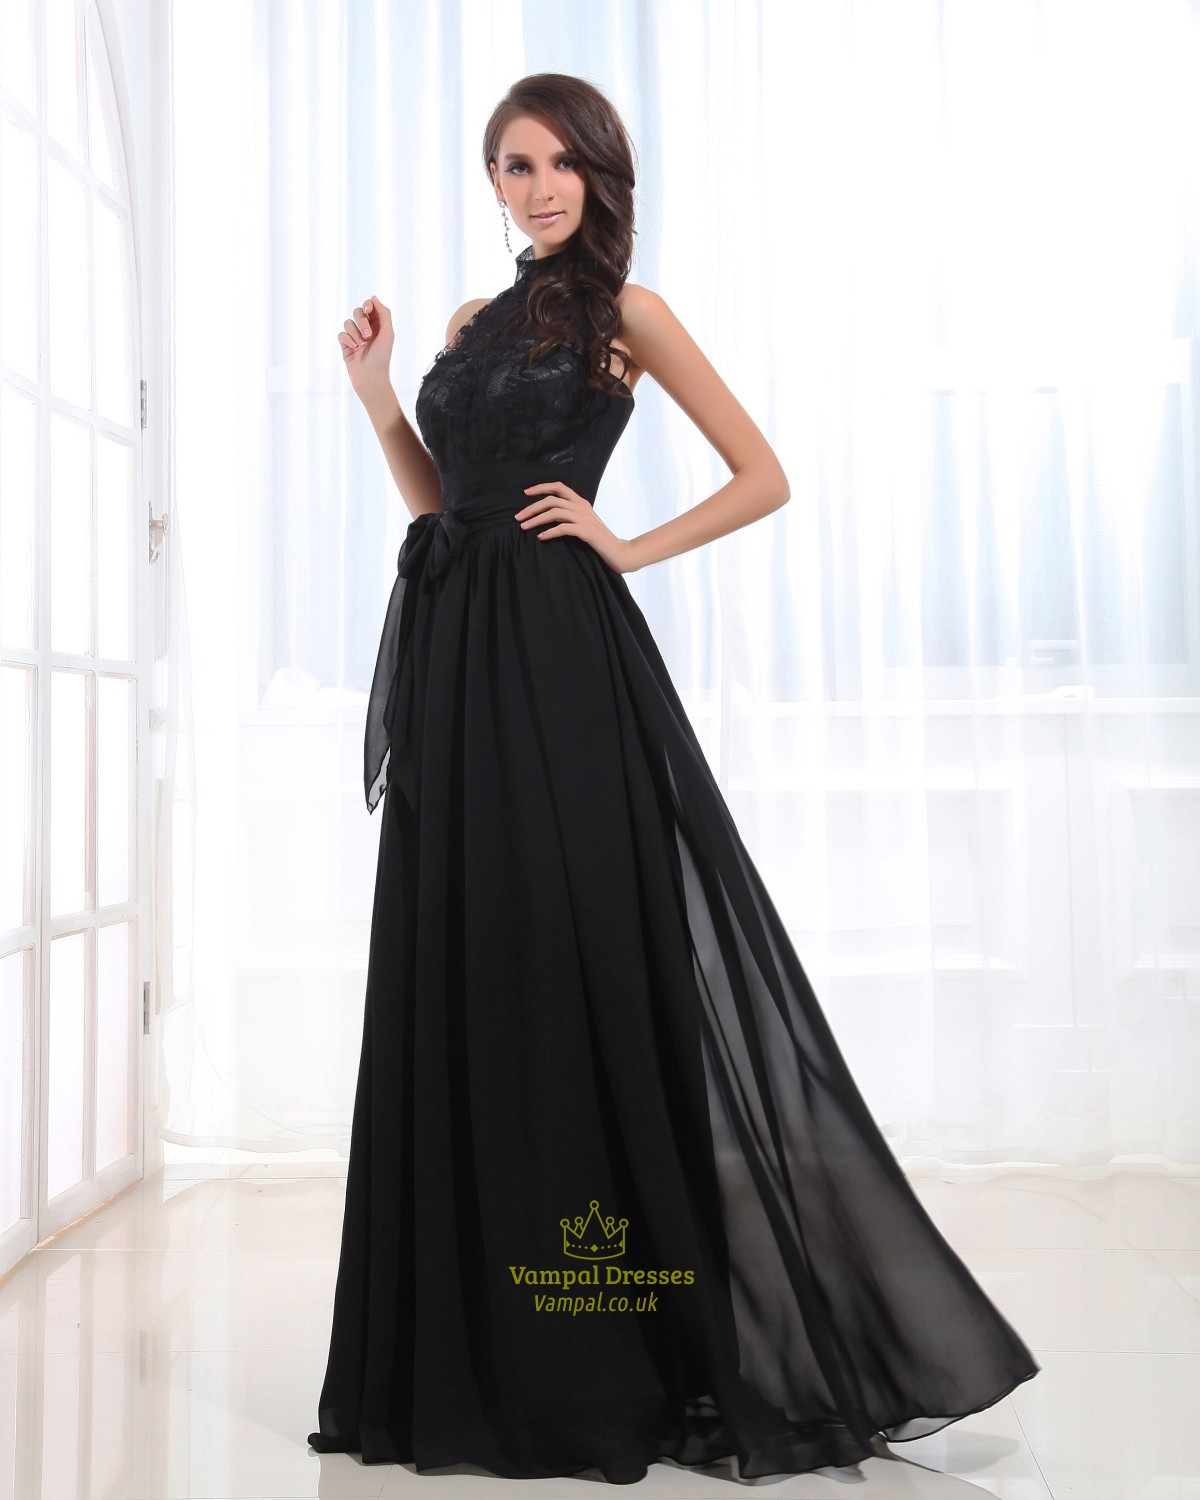 Black Halter Neck Prom Dress